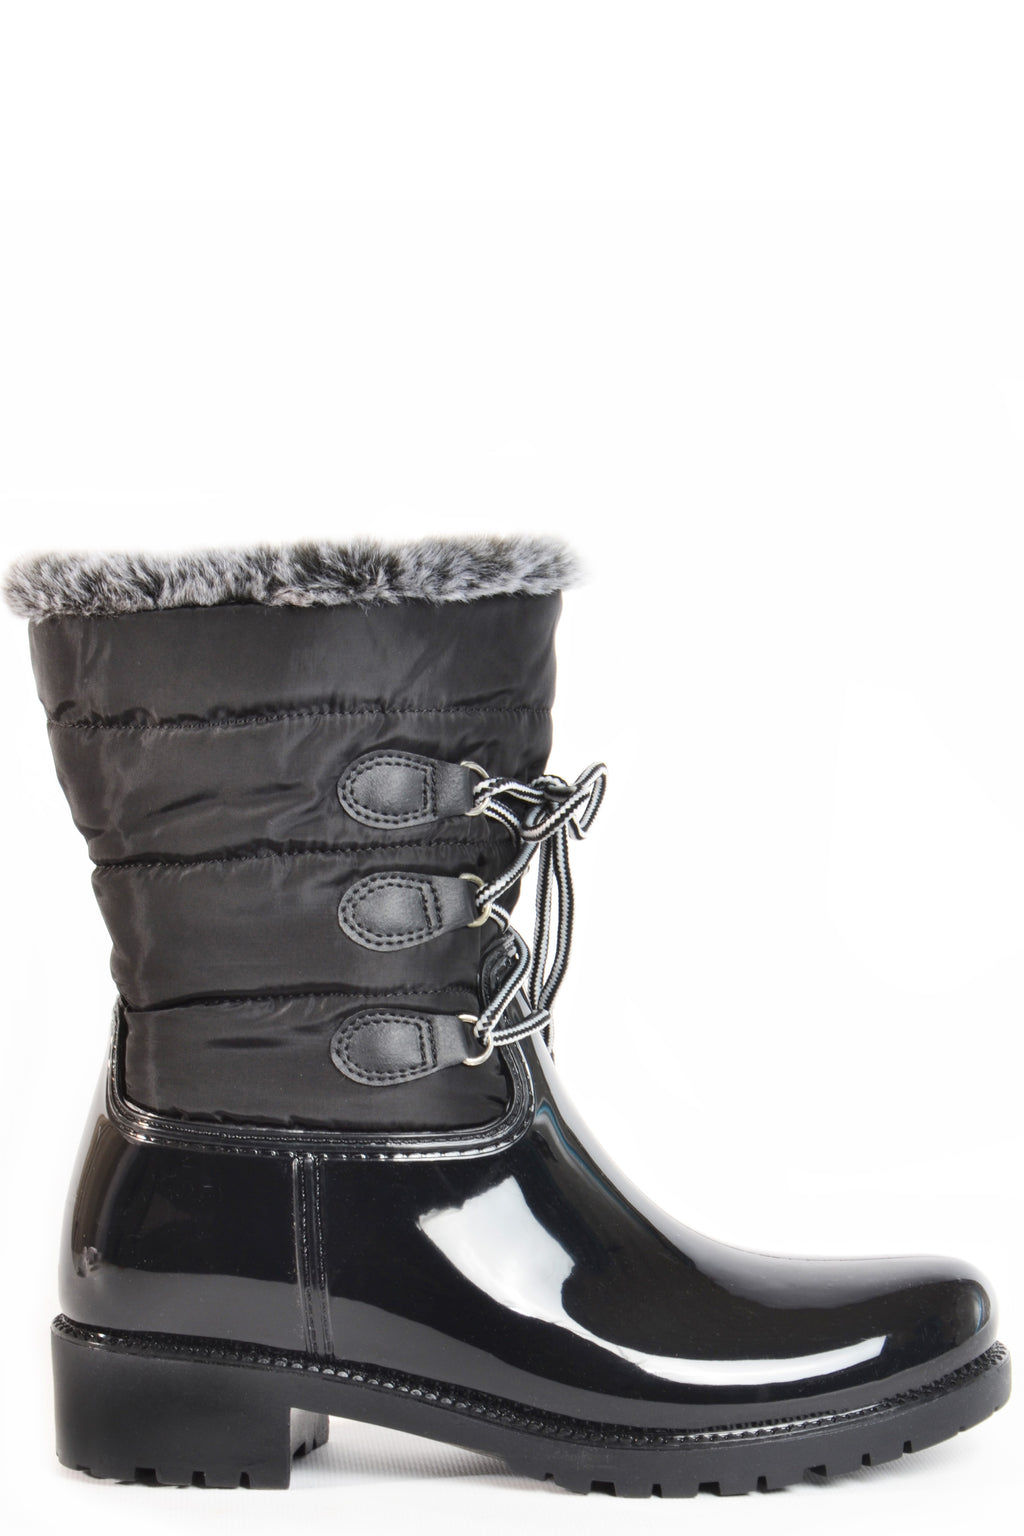 dav Helena luxury faux bunny fur lined boot waterproof